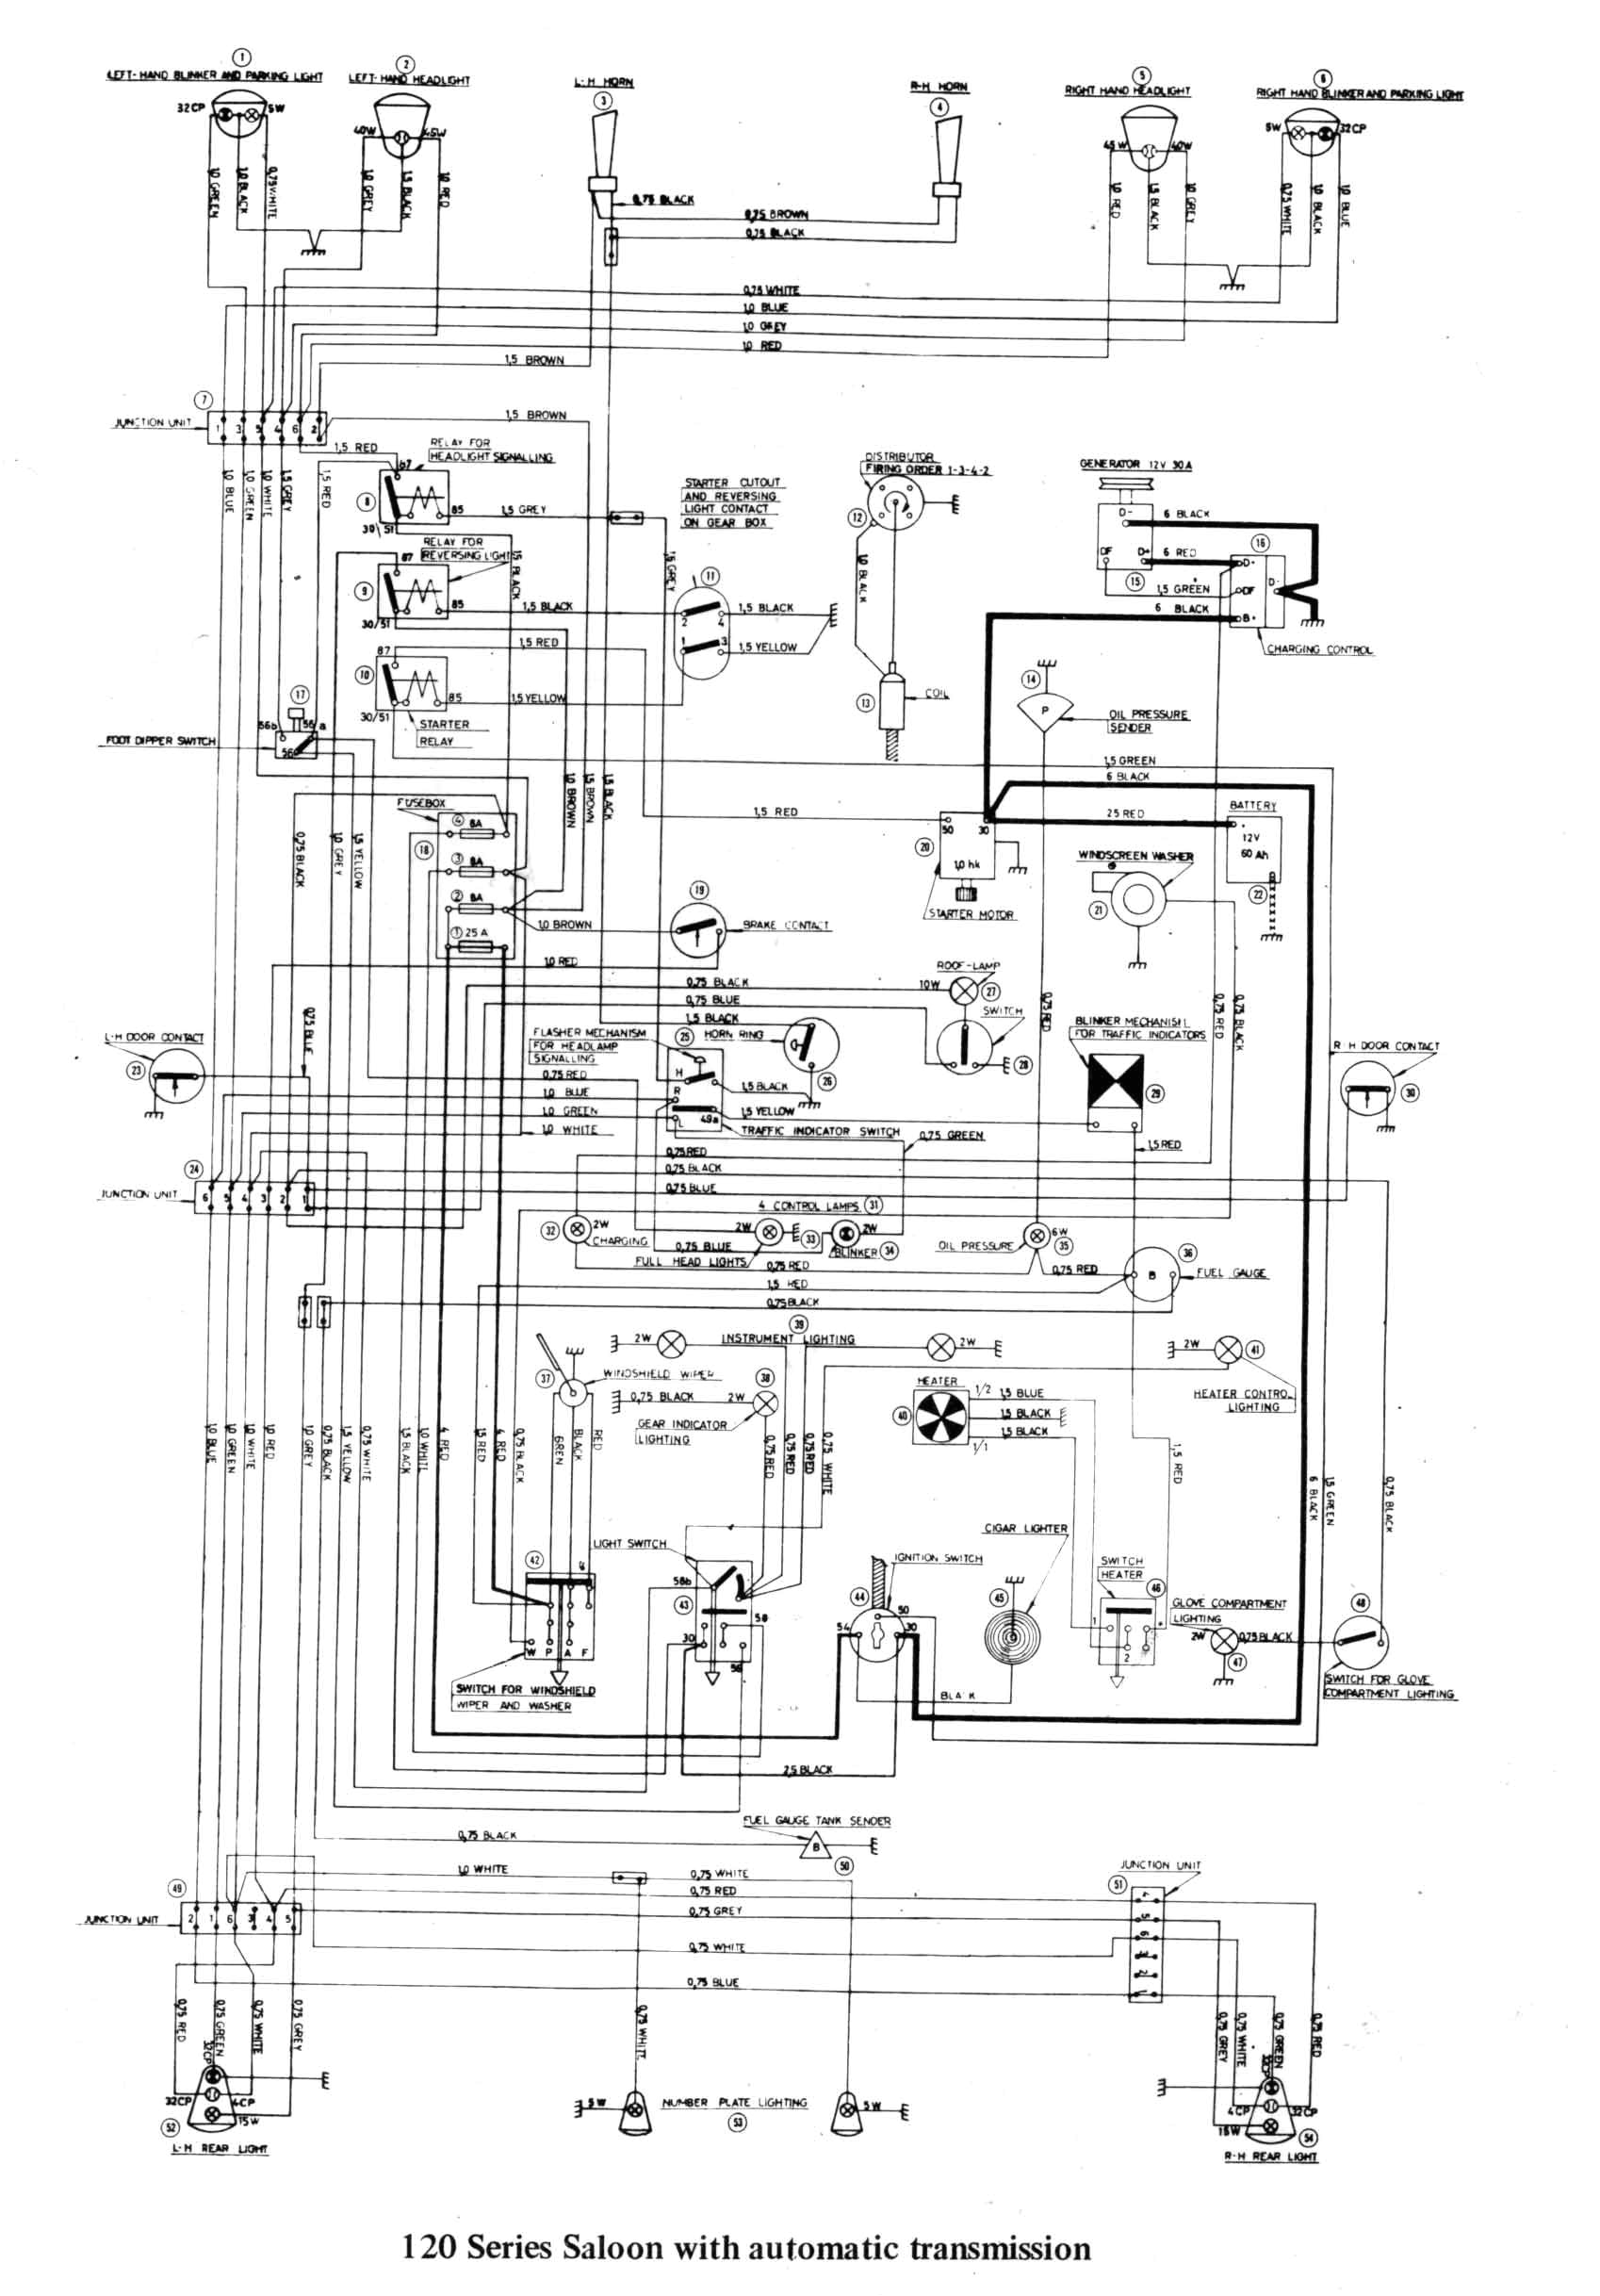 Workhorse Chassis Wiring Diagram Volvo 240 Power Window Relay Location Get Free Image About Wiring